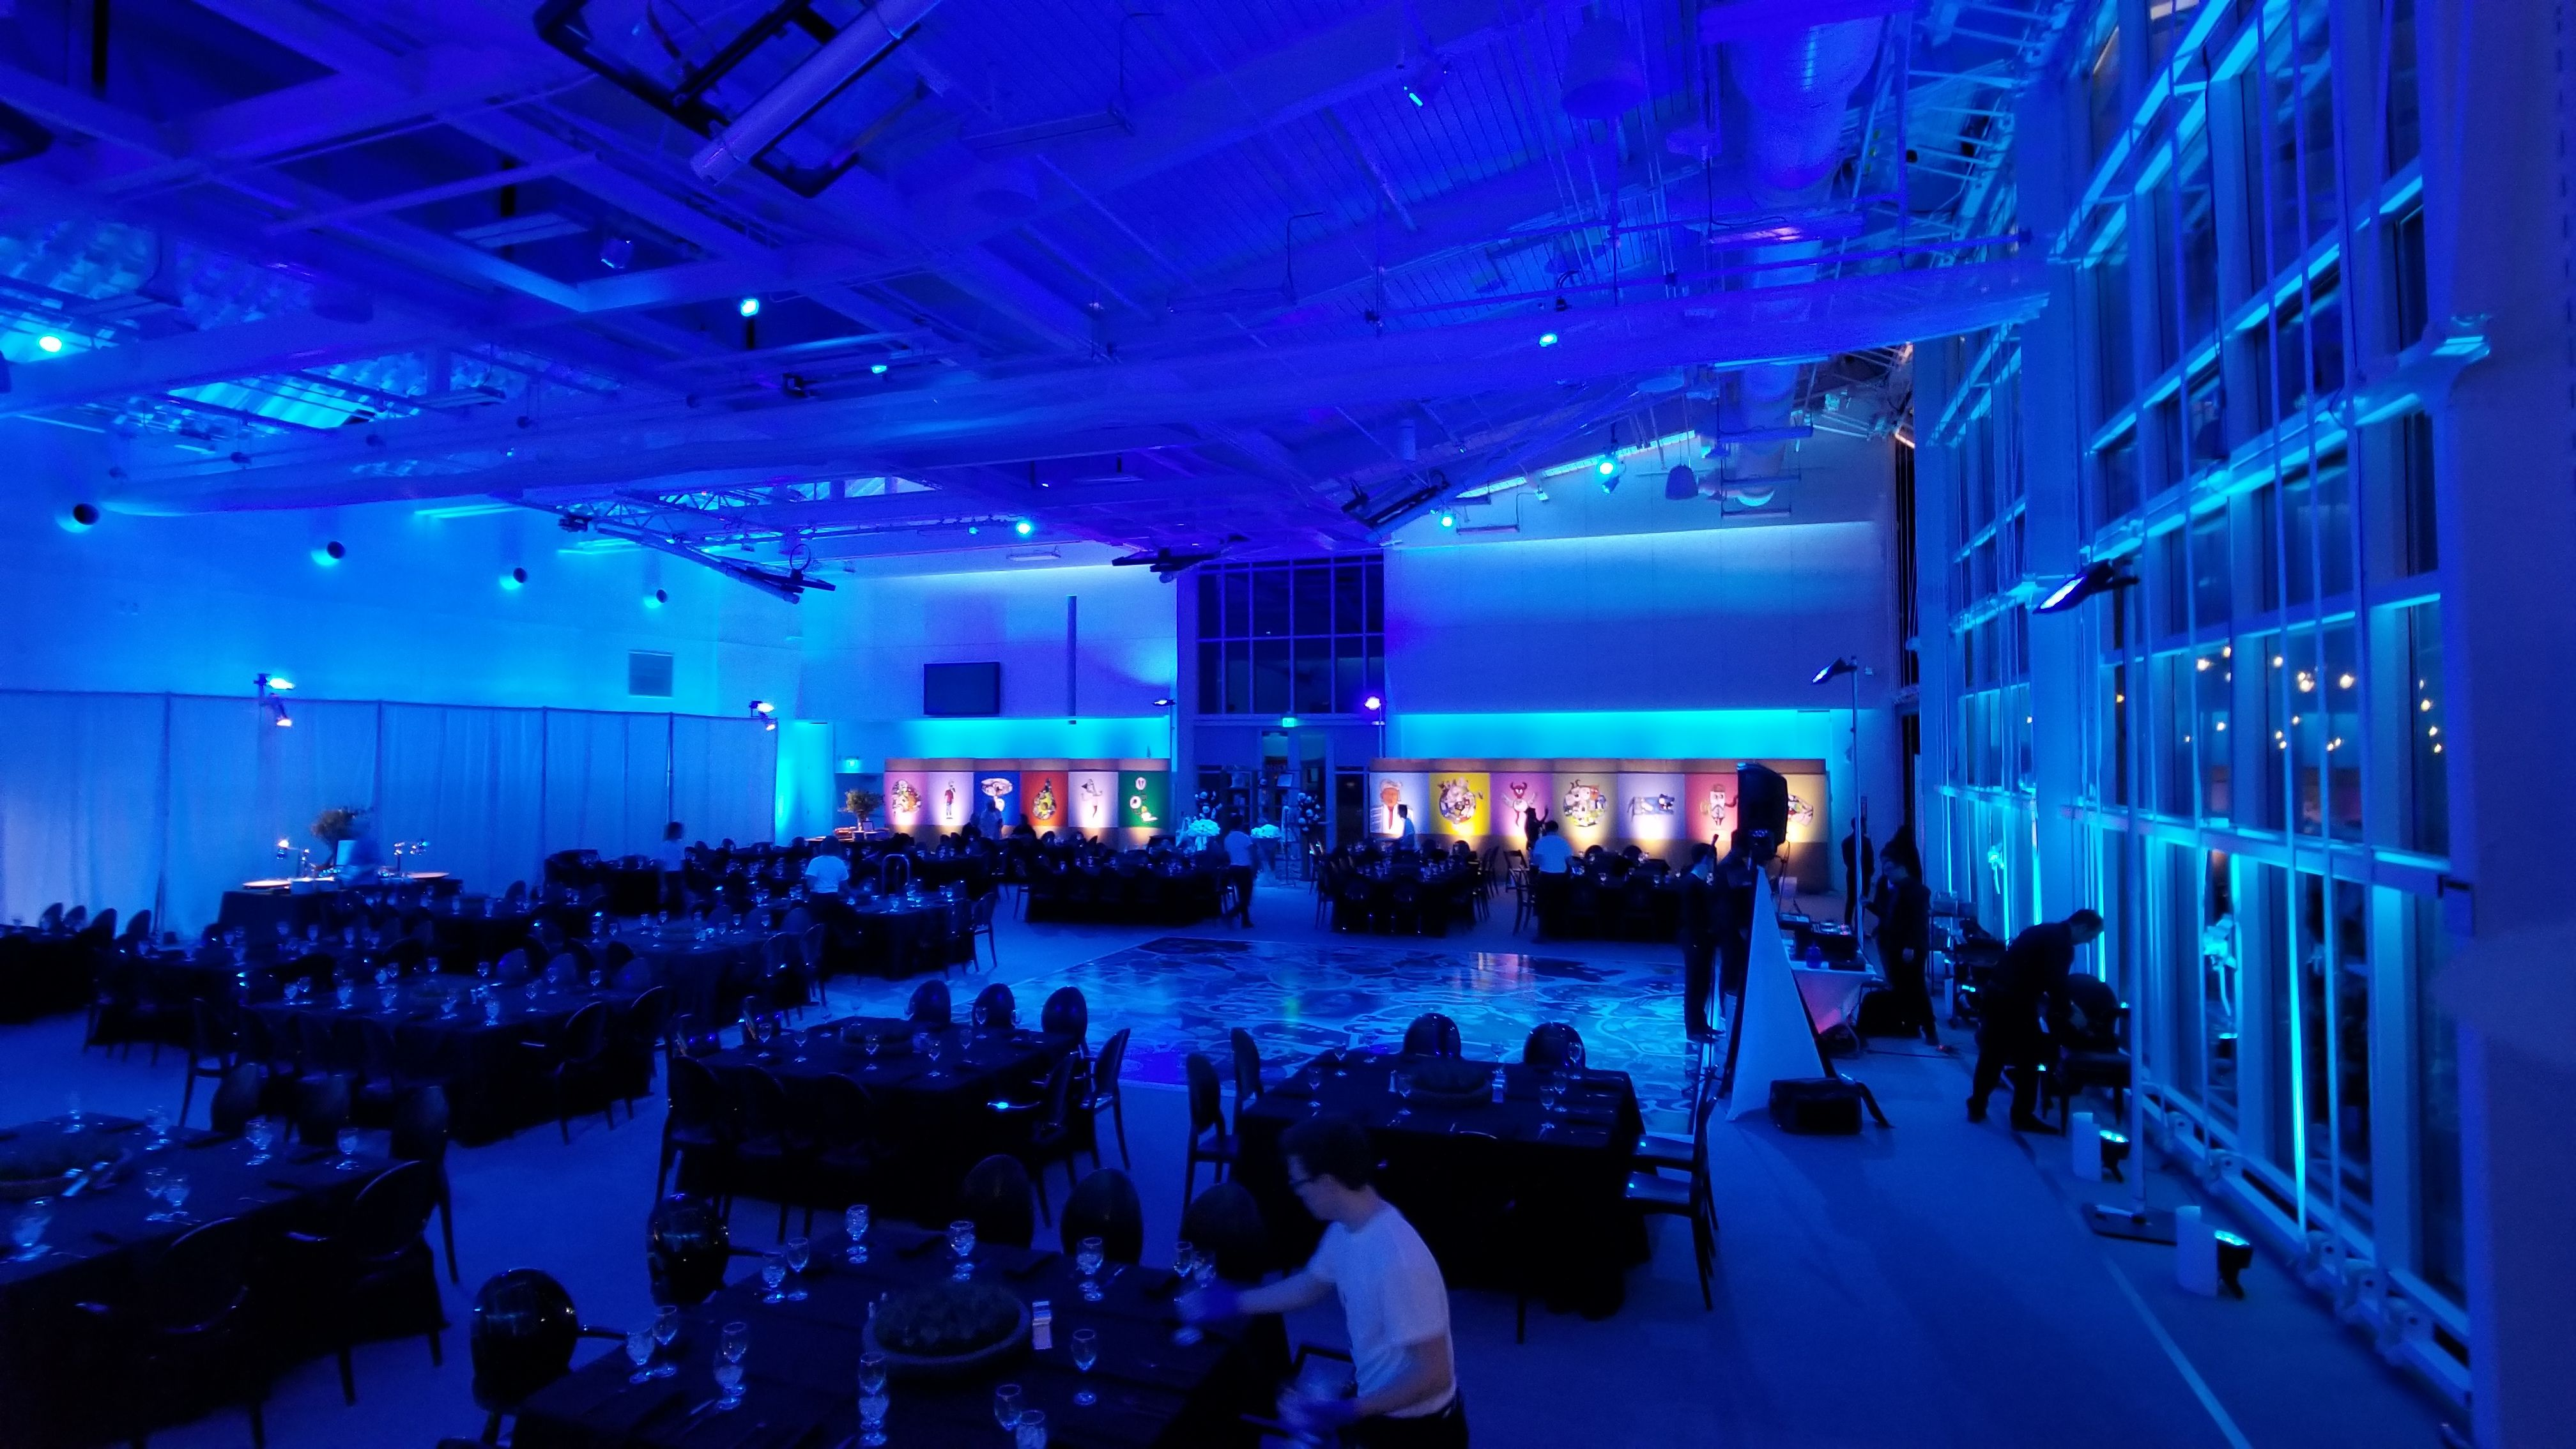 Lighting Design Blue Room Transformation Artwork Gymnasium Bar Mitzvah Bat By Dbcreativity Stephen Wise Temple